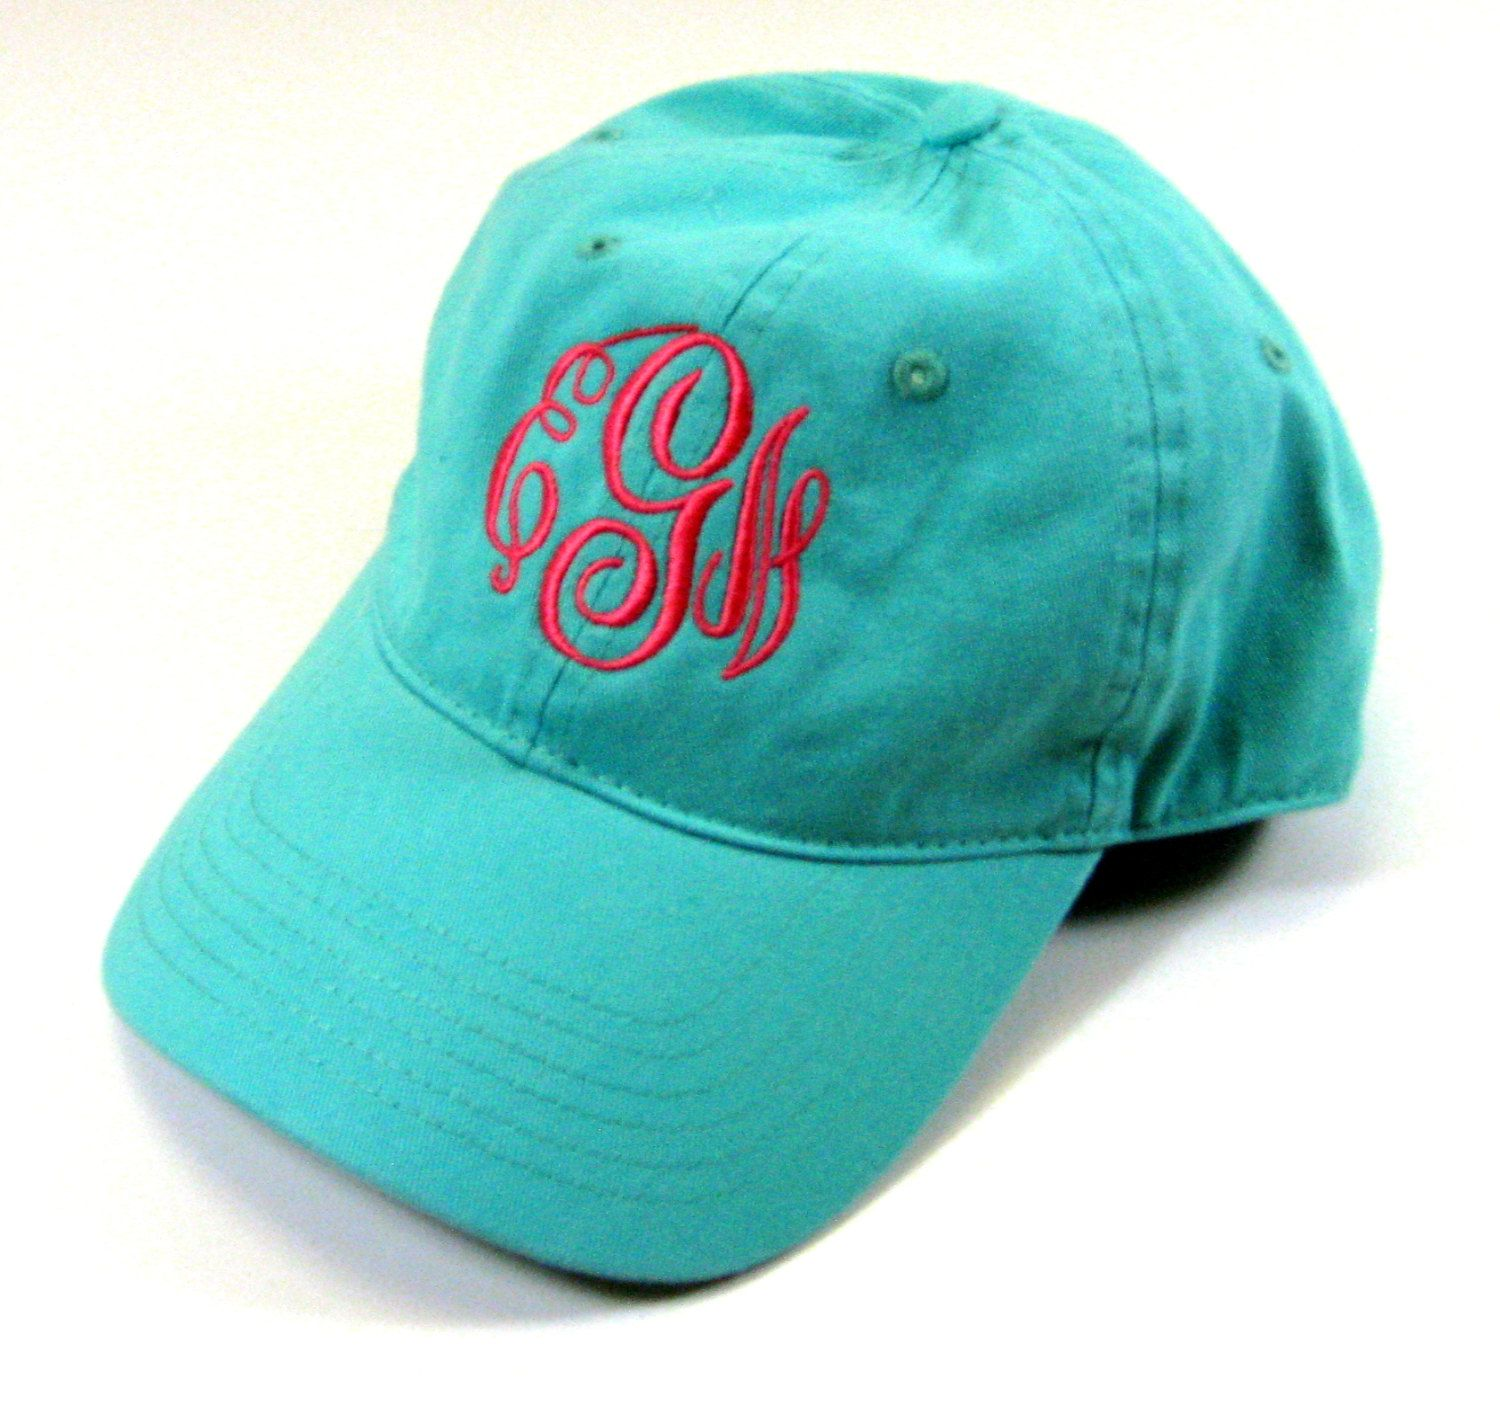 Baseball-Style Cap in Mint Green by jansnstitches on Etsy 174c15bfdeee